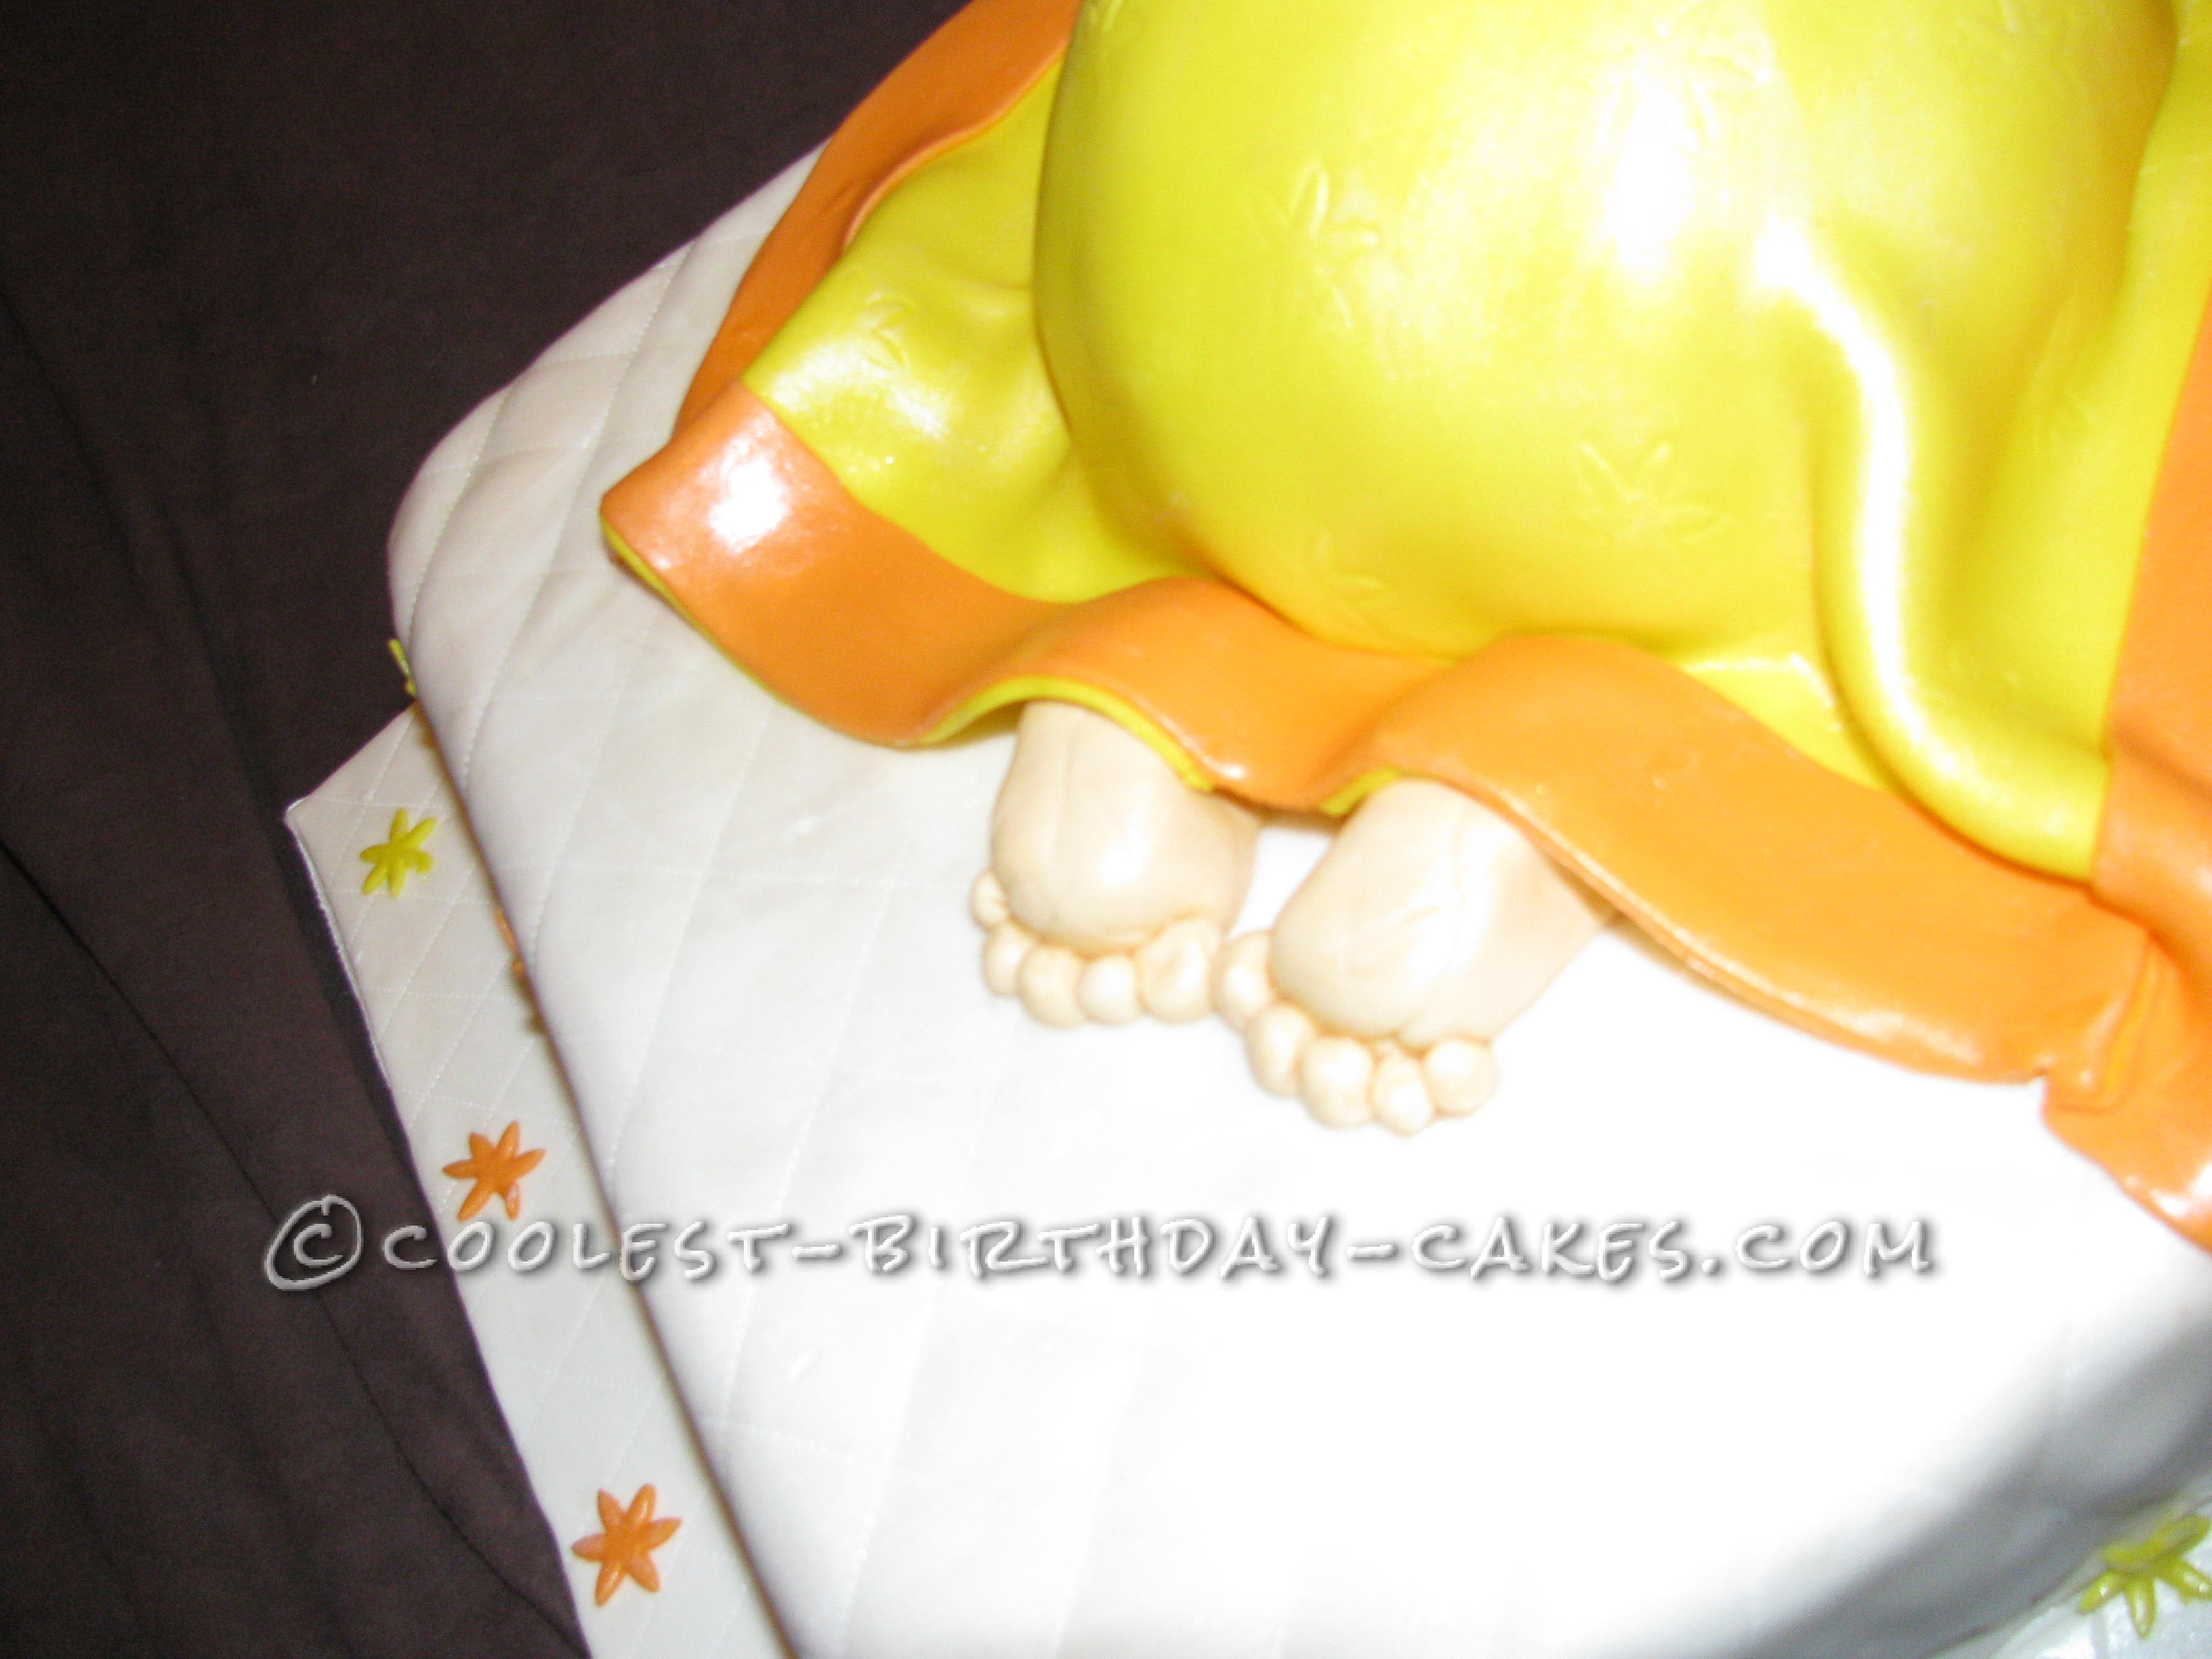 Karate-Themed Baby Shower Cake